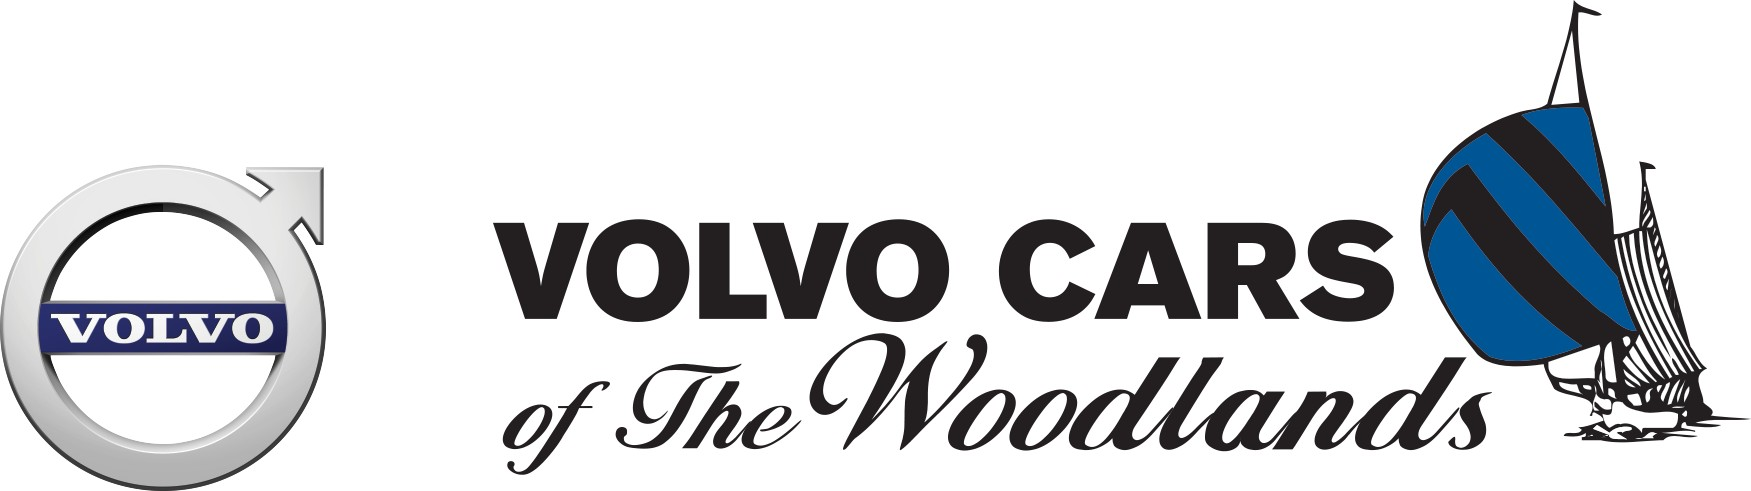 Volvo Of The Woodlands >> Volvo Cars Of The Woodlands Linkedin